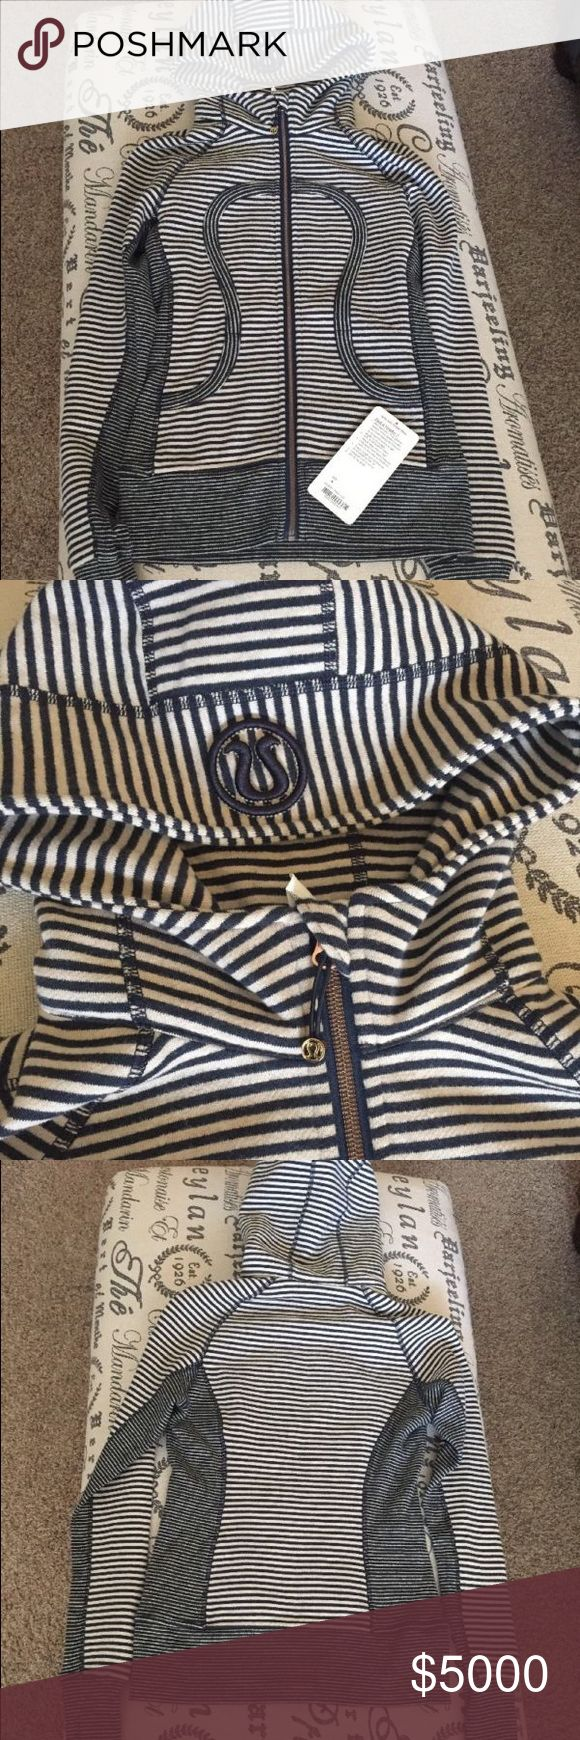 ISO (not for sale!) Lululemon scuba stripe hoodie I'm looking to buy this hoodie in a size 6! Please help me find it 😊 like new or new condition....(pictures found online) lululemon athletica Tops Sweatshirts & Hoodies